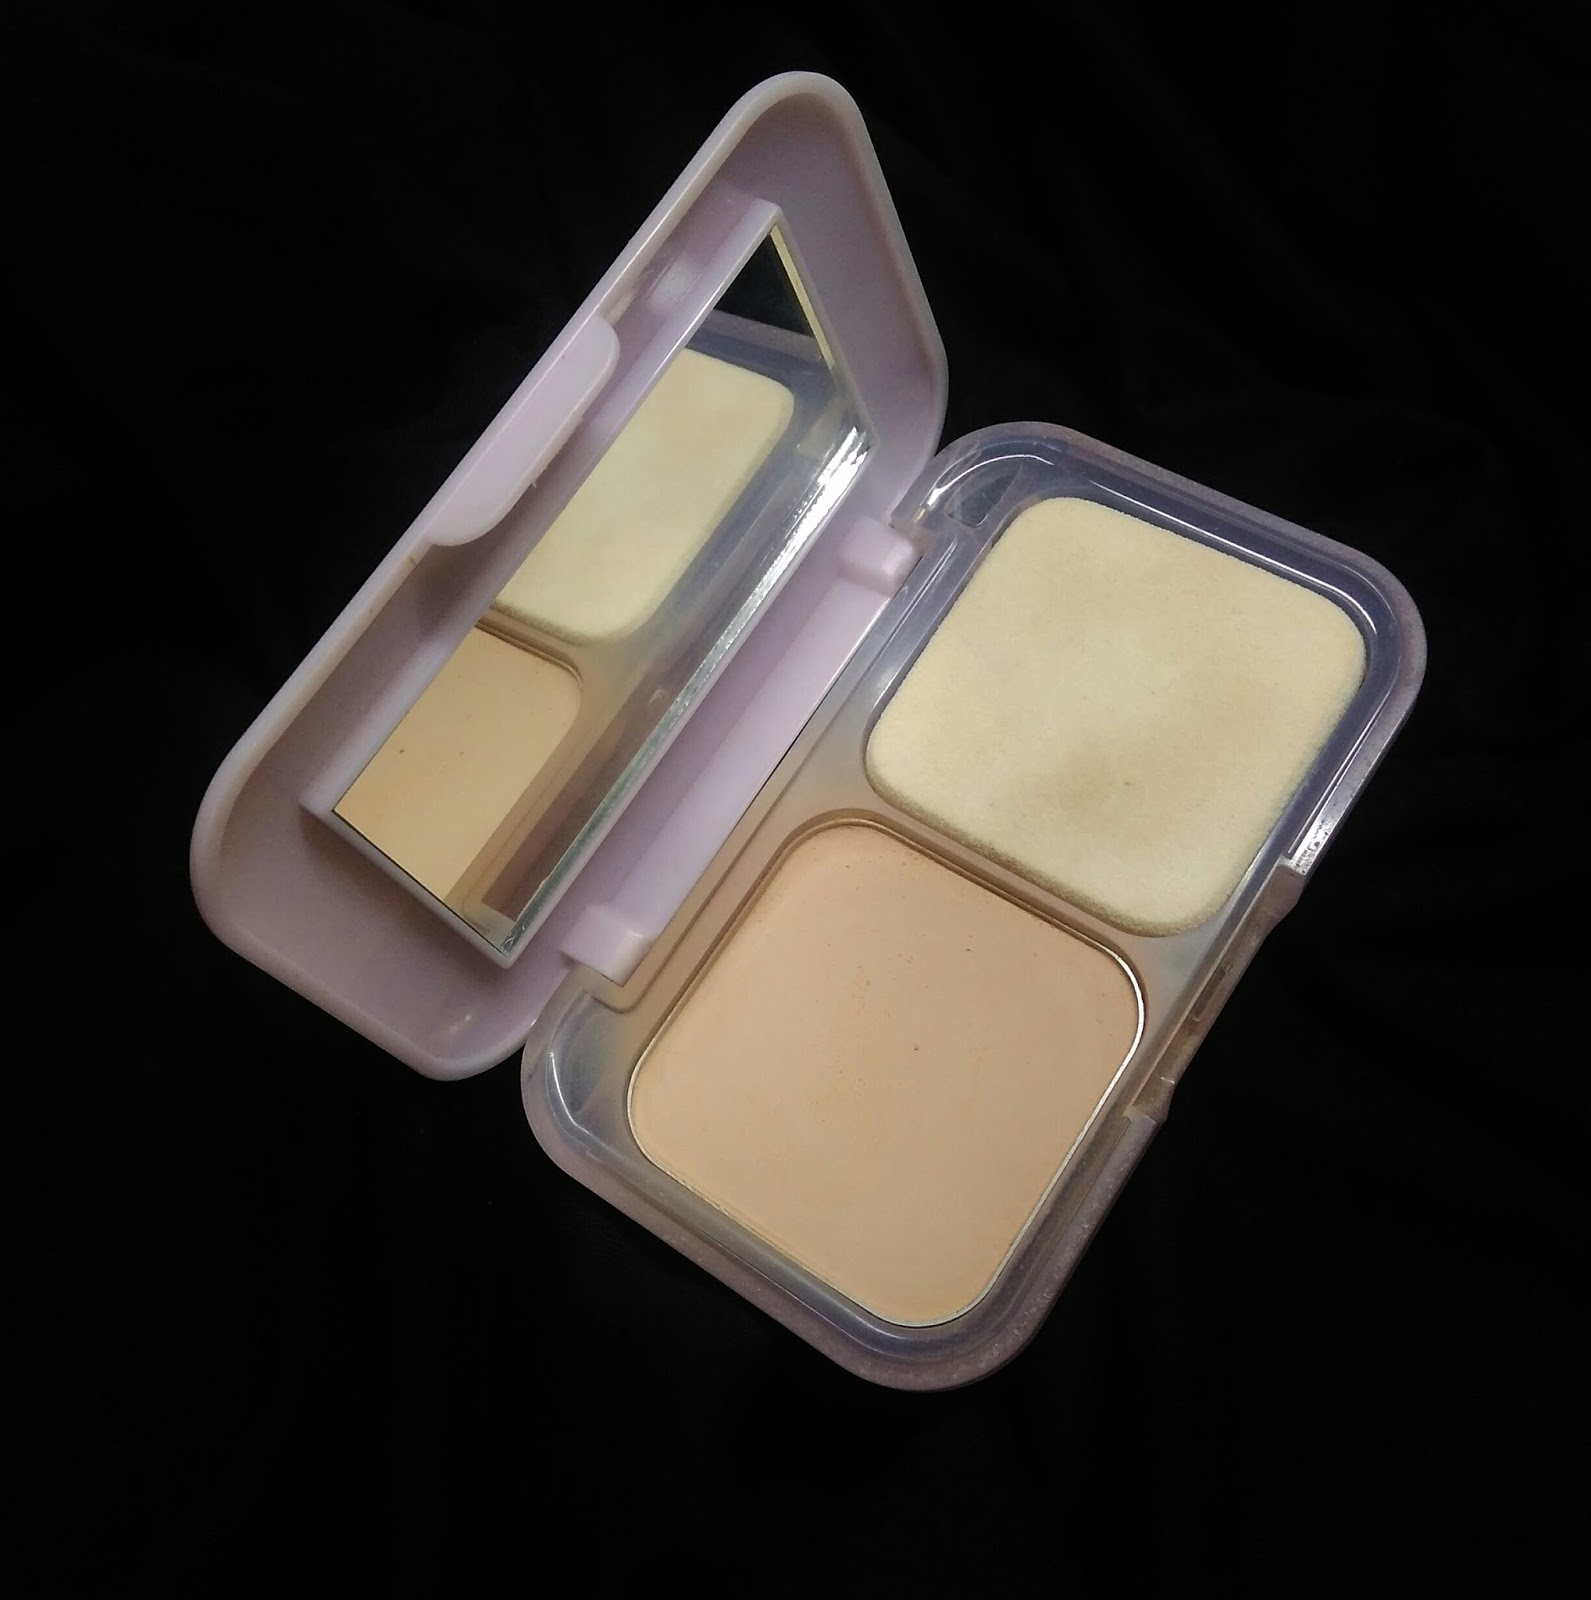 MAYBELLINE CLEAR GLOW PRESSED POWDER (03 NATURAL) - REVIEW ...